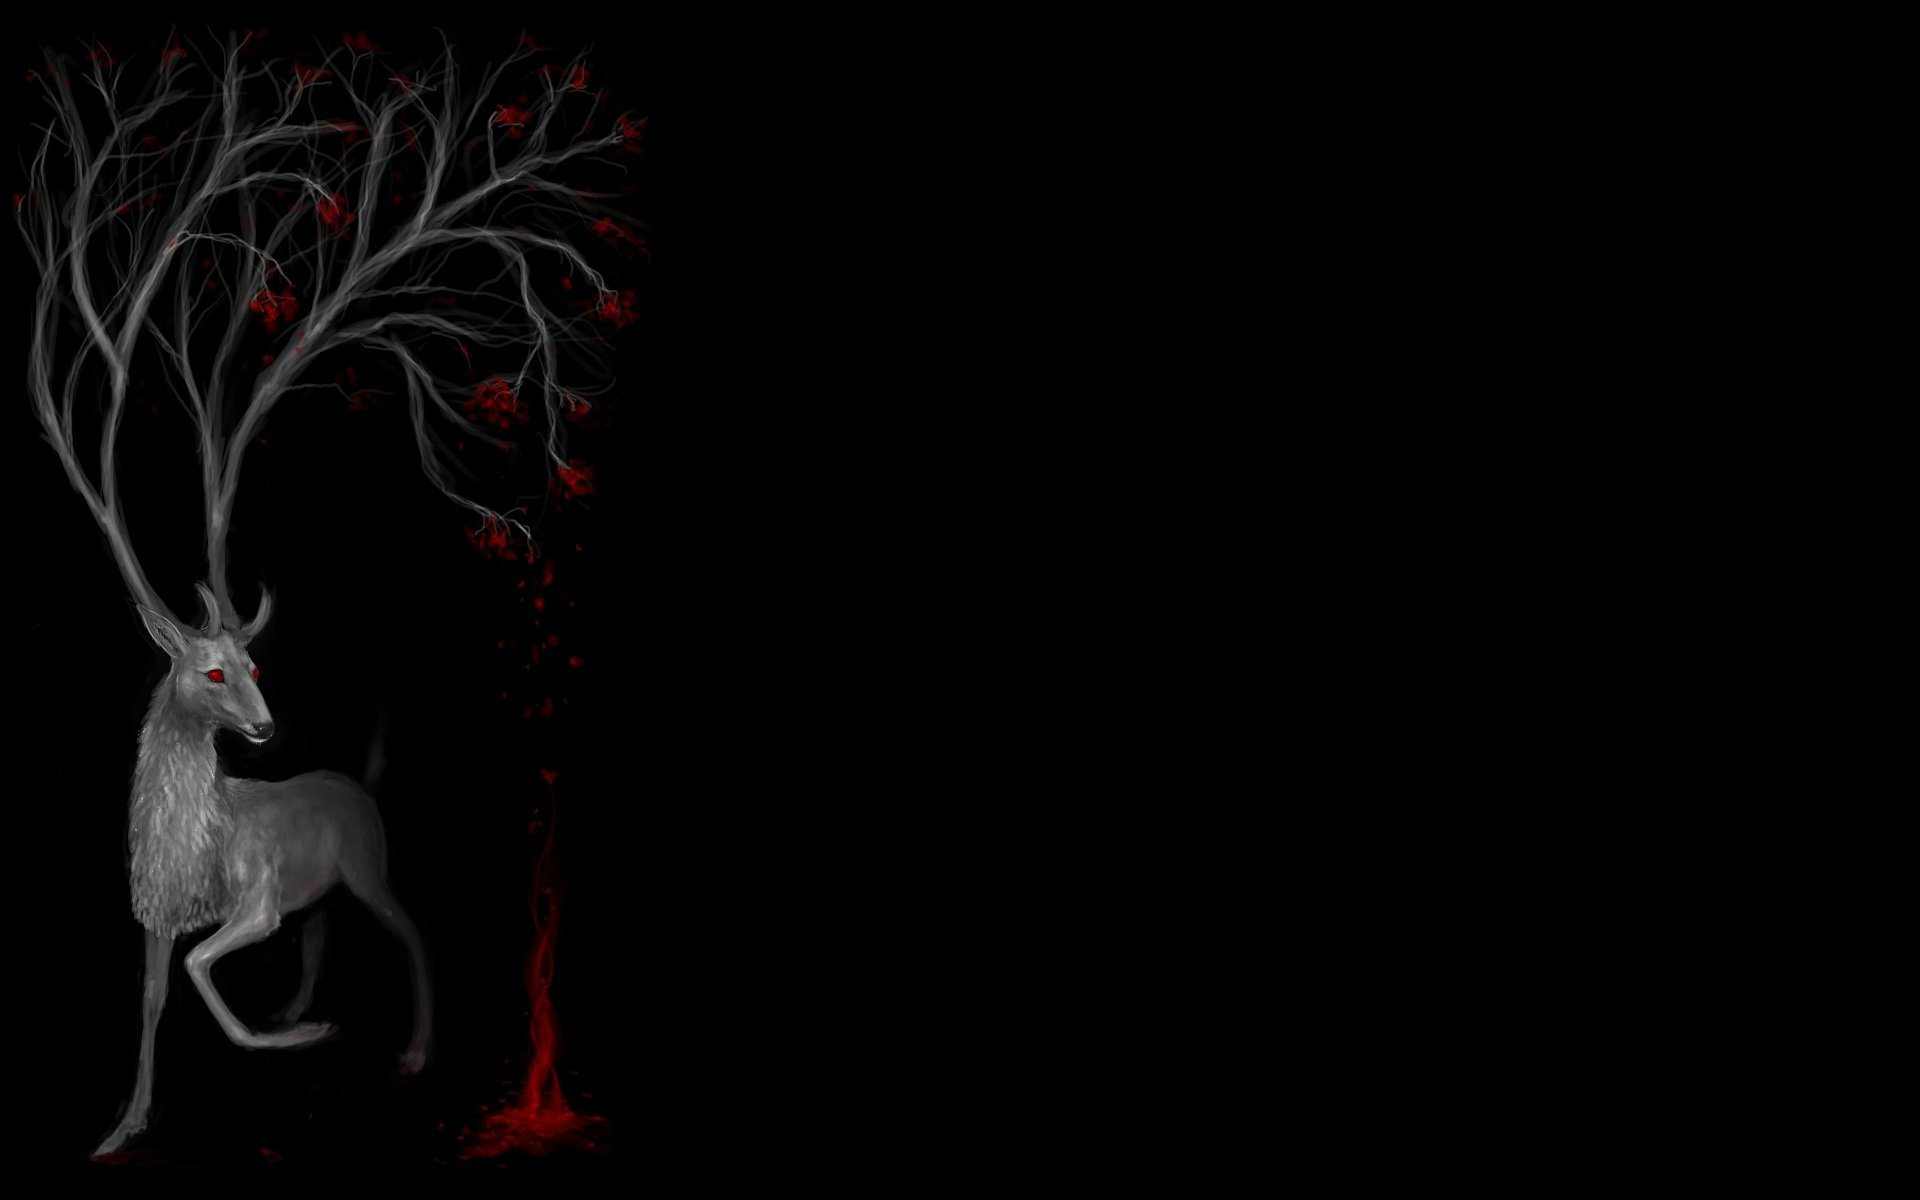 Dark Blood Wallpaper Blood Hd Wallpaper Background Image 1920x1200 Id 243256